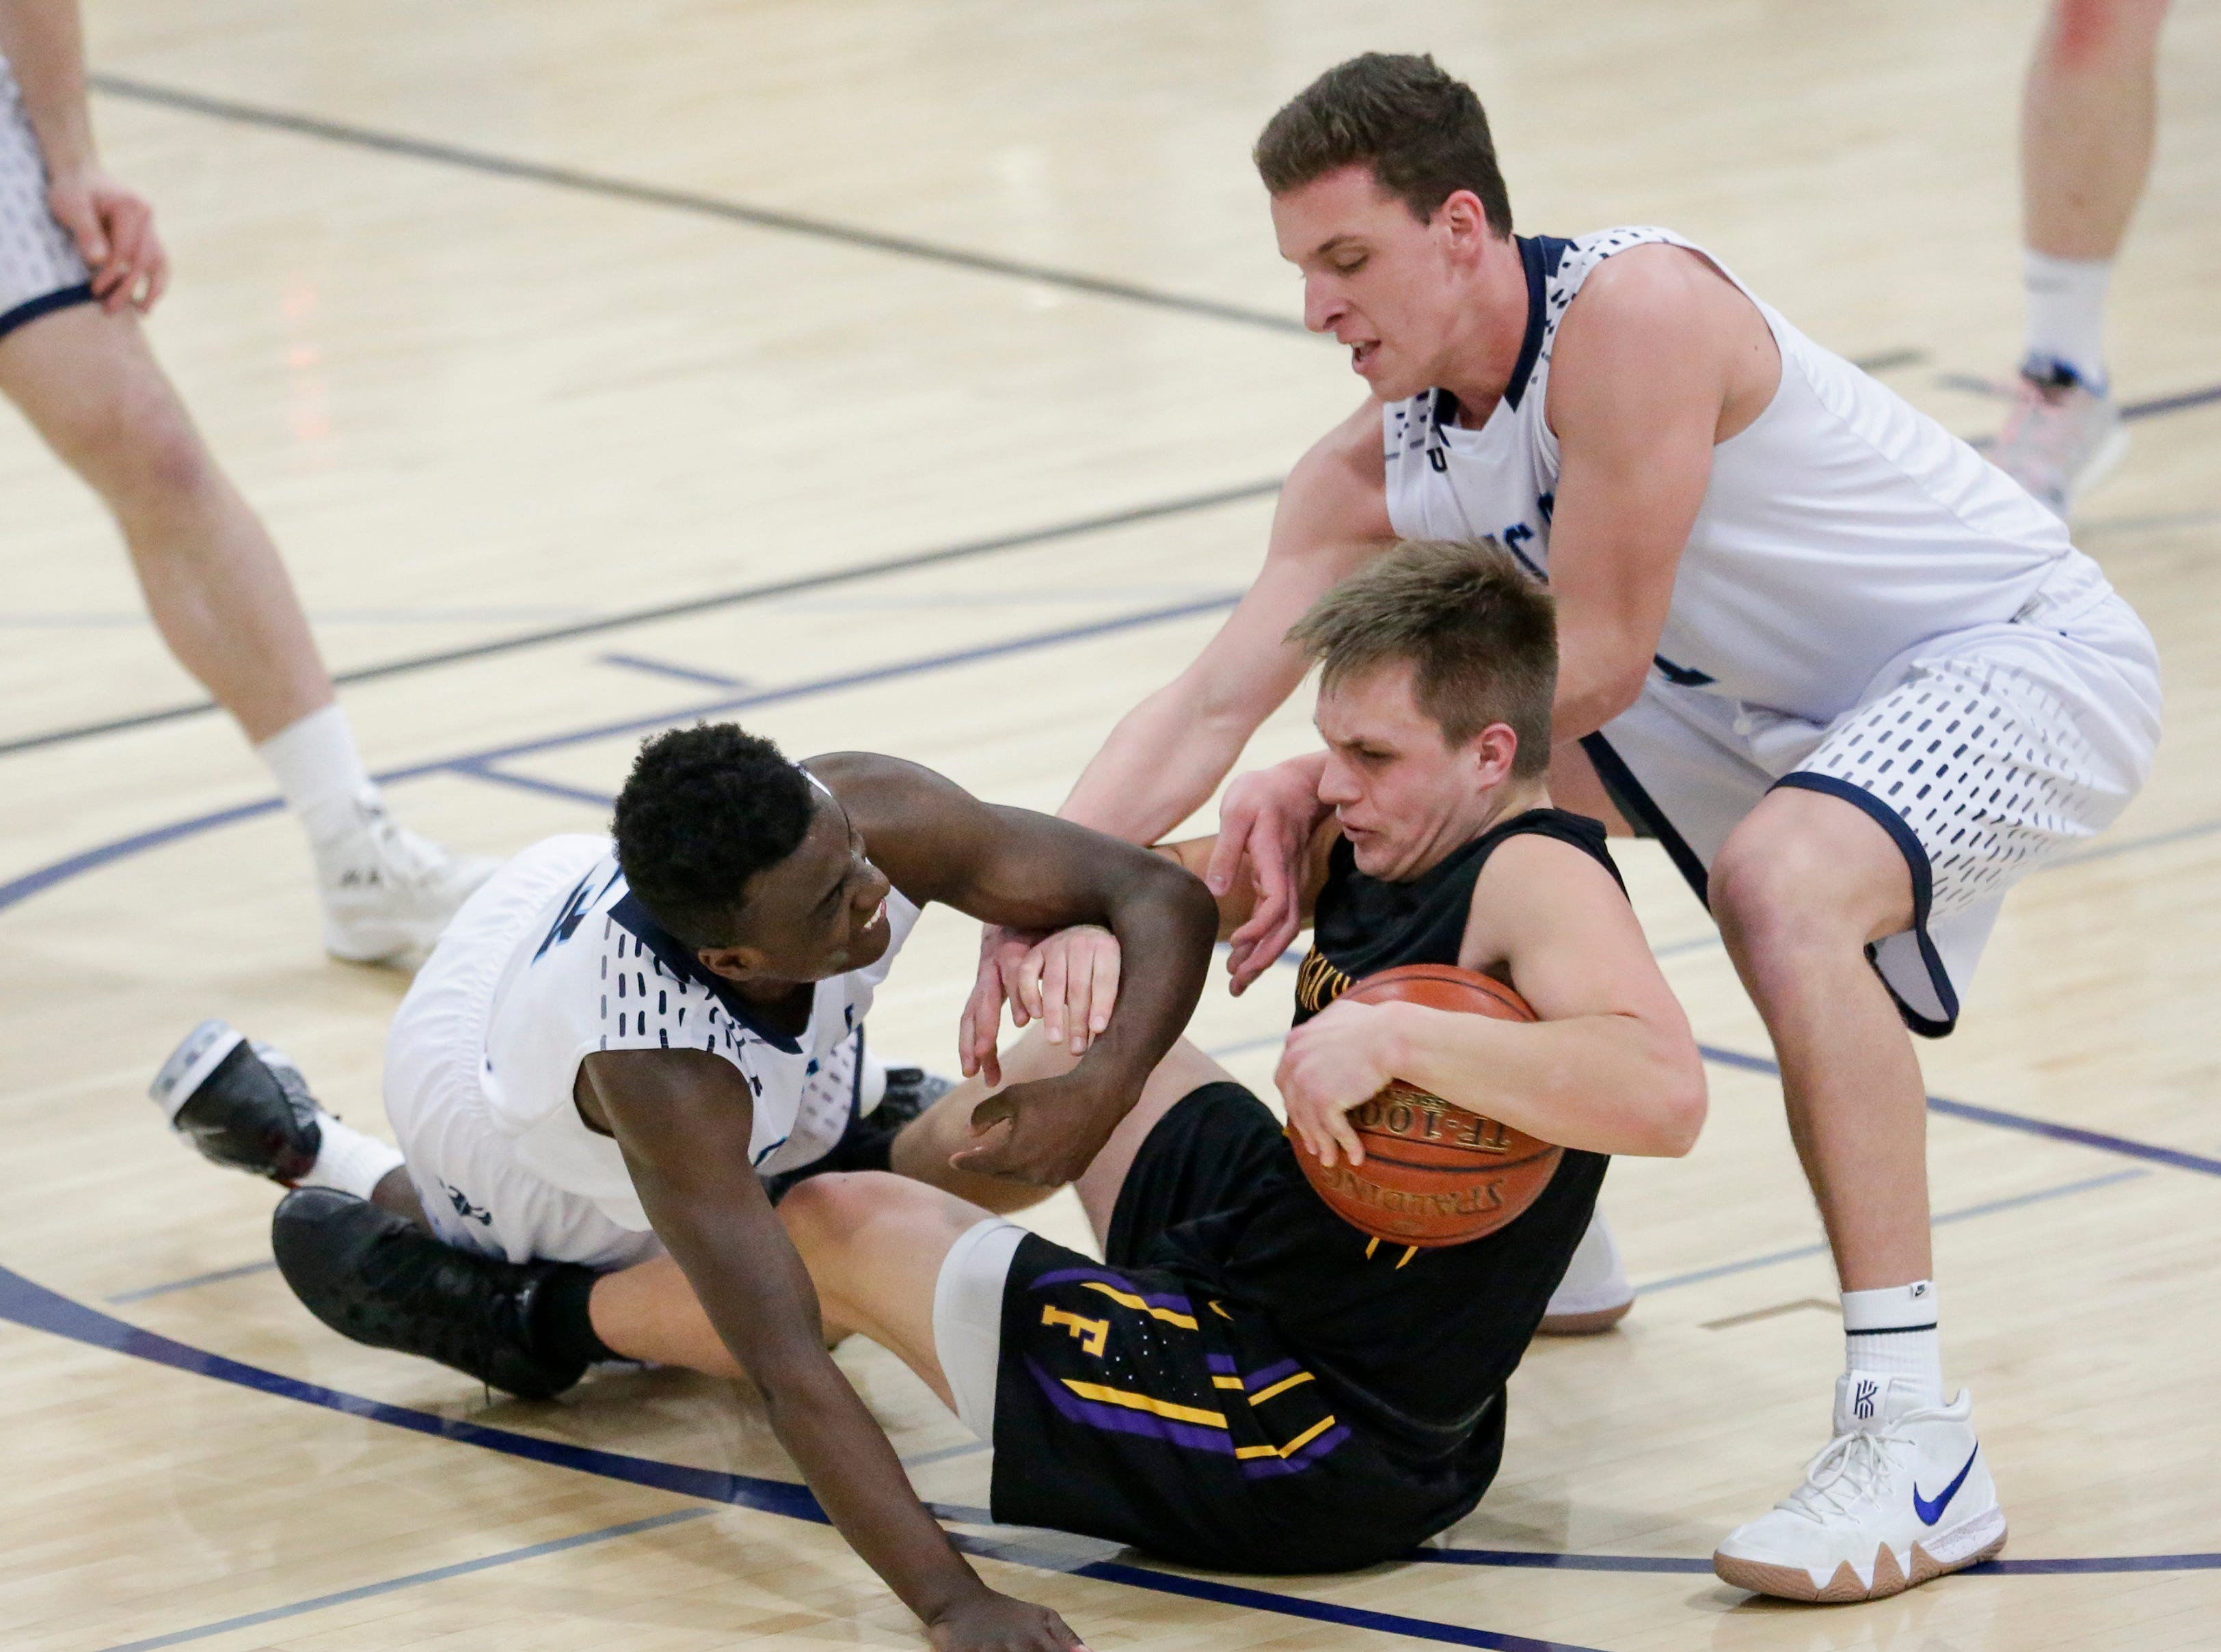 Sheboygan Falls' Alex Schmitt (2) tries to avoid a jump ball against Roncalli's Chombi Lambert (3) and Daniel Burgarino (1) during an EWC matchup at Roncalli High School Thursday, January 10, 2019, in Manitowoc, Wis. Joshua Clark/USA TODAY NETWORK-Wisconsin